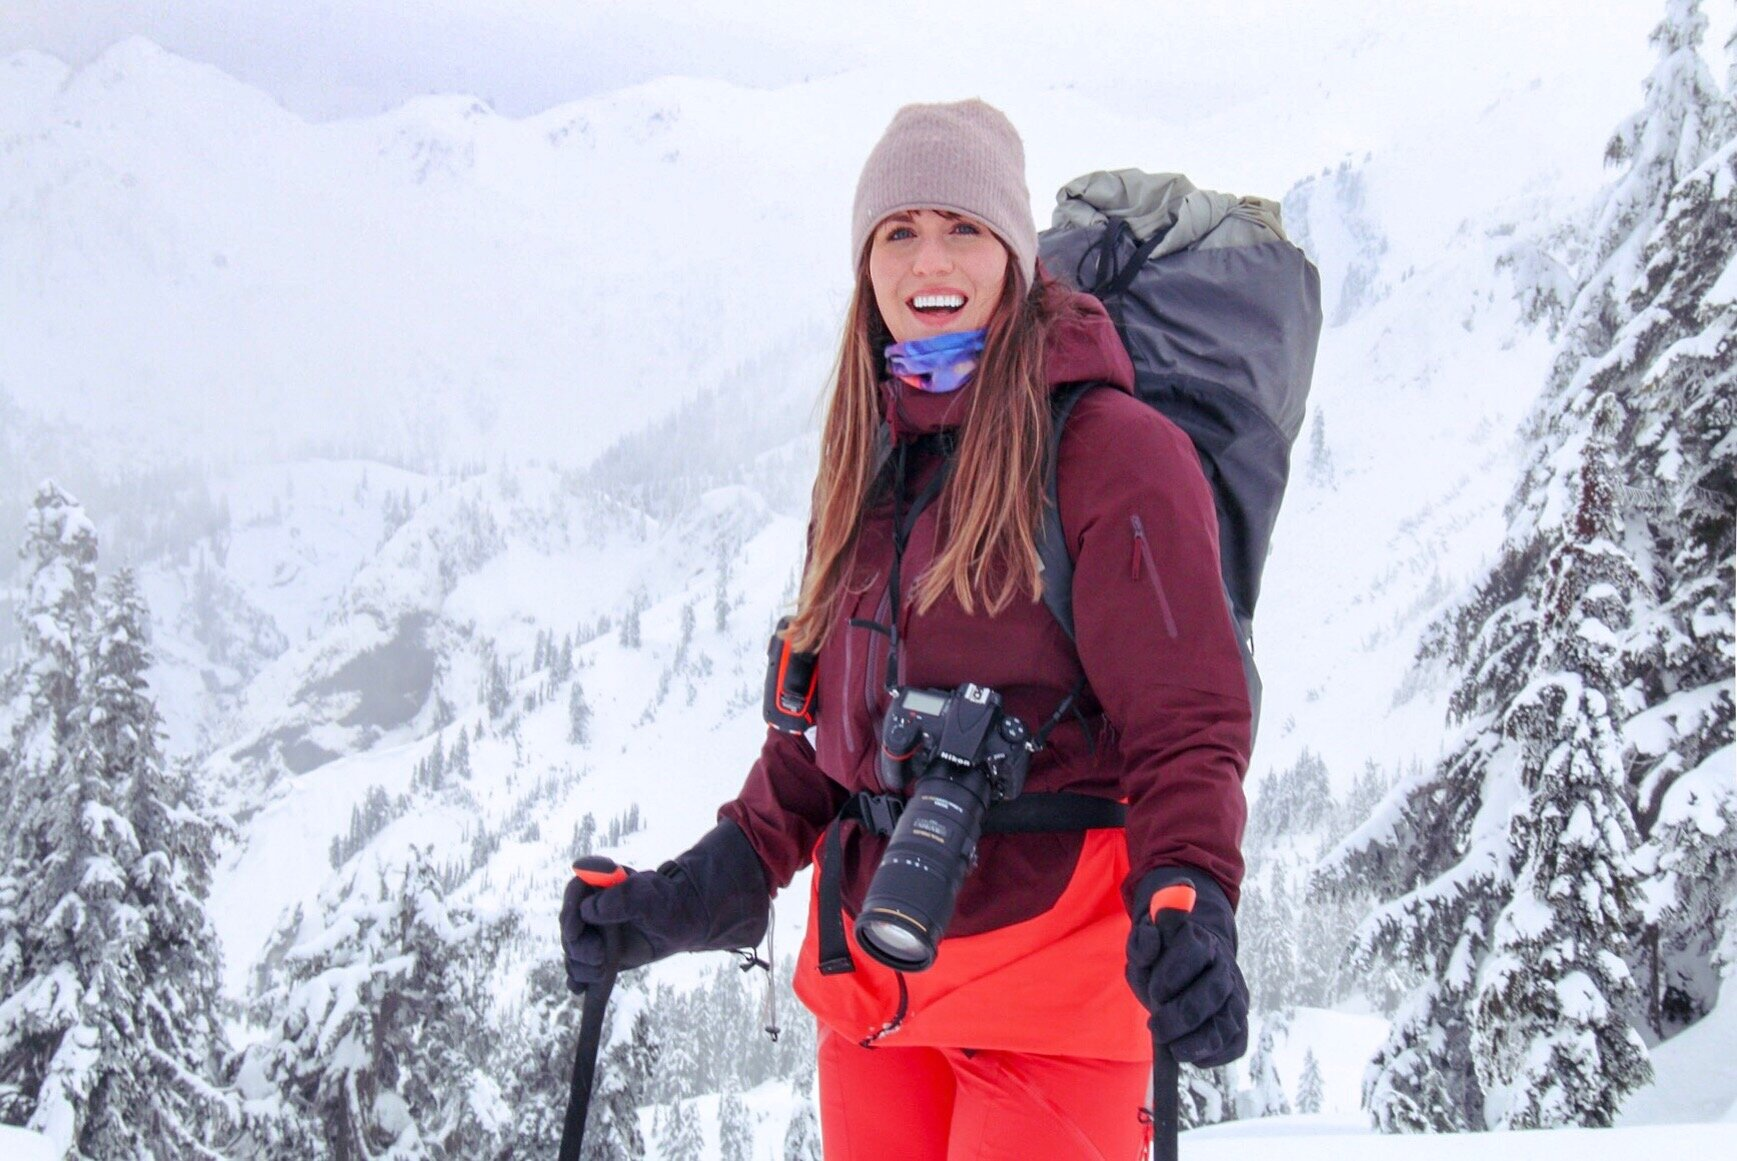 Meghan Young | GROUP experience LEADER April'19 EBC TREK - Hi, I'm Meghan! I'm a Seattle-based photographer and writer with a focus on stories centered around outdoor adventure, human-powered travel, and the deep connections inspired by wild places in cultures across the globe. I have traversed thousands of miles in the backcountry and beyond with my camera in hand, tackling technical terrain with a high level of energy despite inclement weather, wildlife encounters, heat stroke, and more. I also teach outdoor skills clinics for PNW Outdoor Women, a community-based group for outdoor adventurists I co-founded in 2015.When I'm not on assignment, you can find me dabbling in watercolors, writing haikus, and attempting to snuggle every puppy I meet.